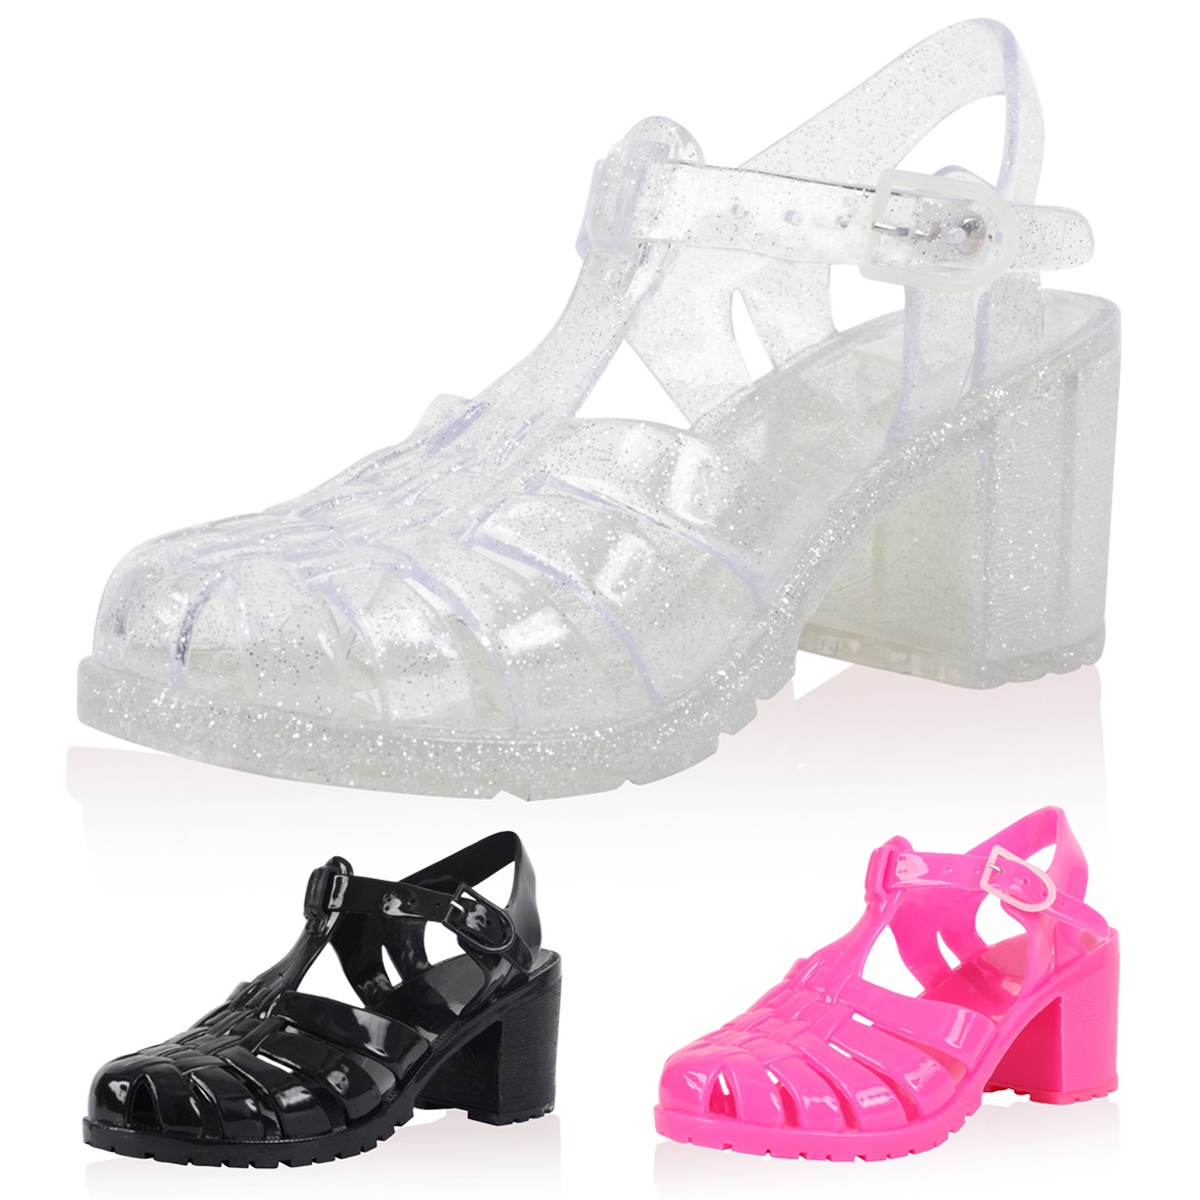 Watch Jelly Shoes porn videos for free, here on topinsurances.ga Discover the growing collection of high quality Most Relevant XXX movies and clips. No other sex tube is more popular and features more Jelly Shoes scenes than Pornhub! Browse through our impressive selection of porn videos in HD quality on any device you own.